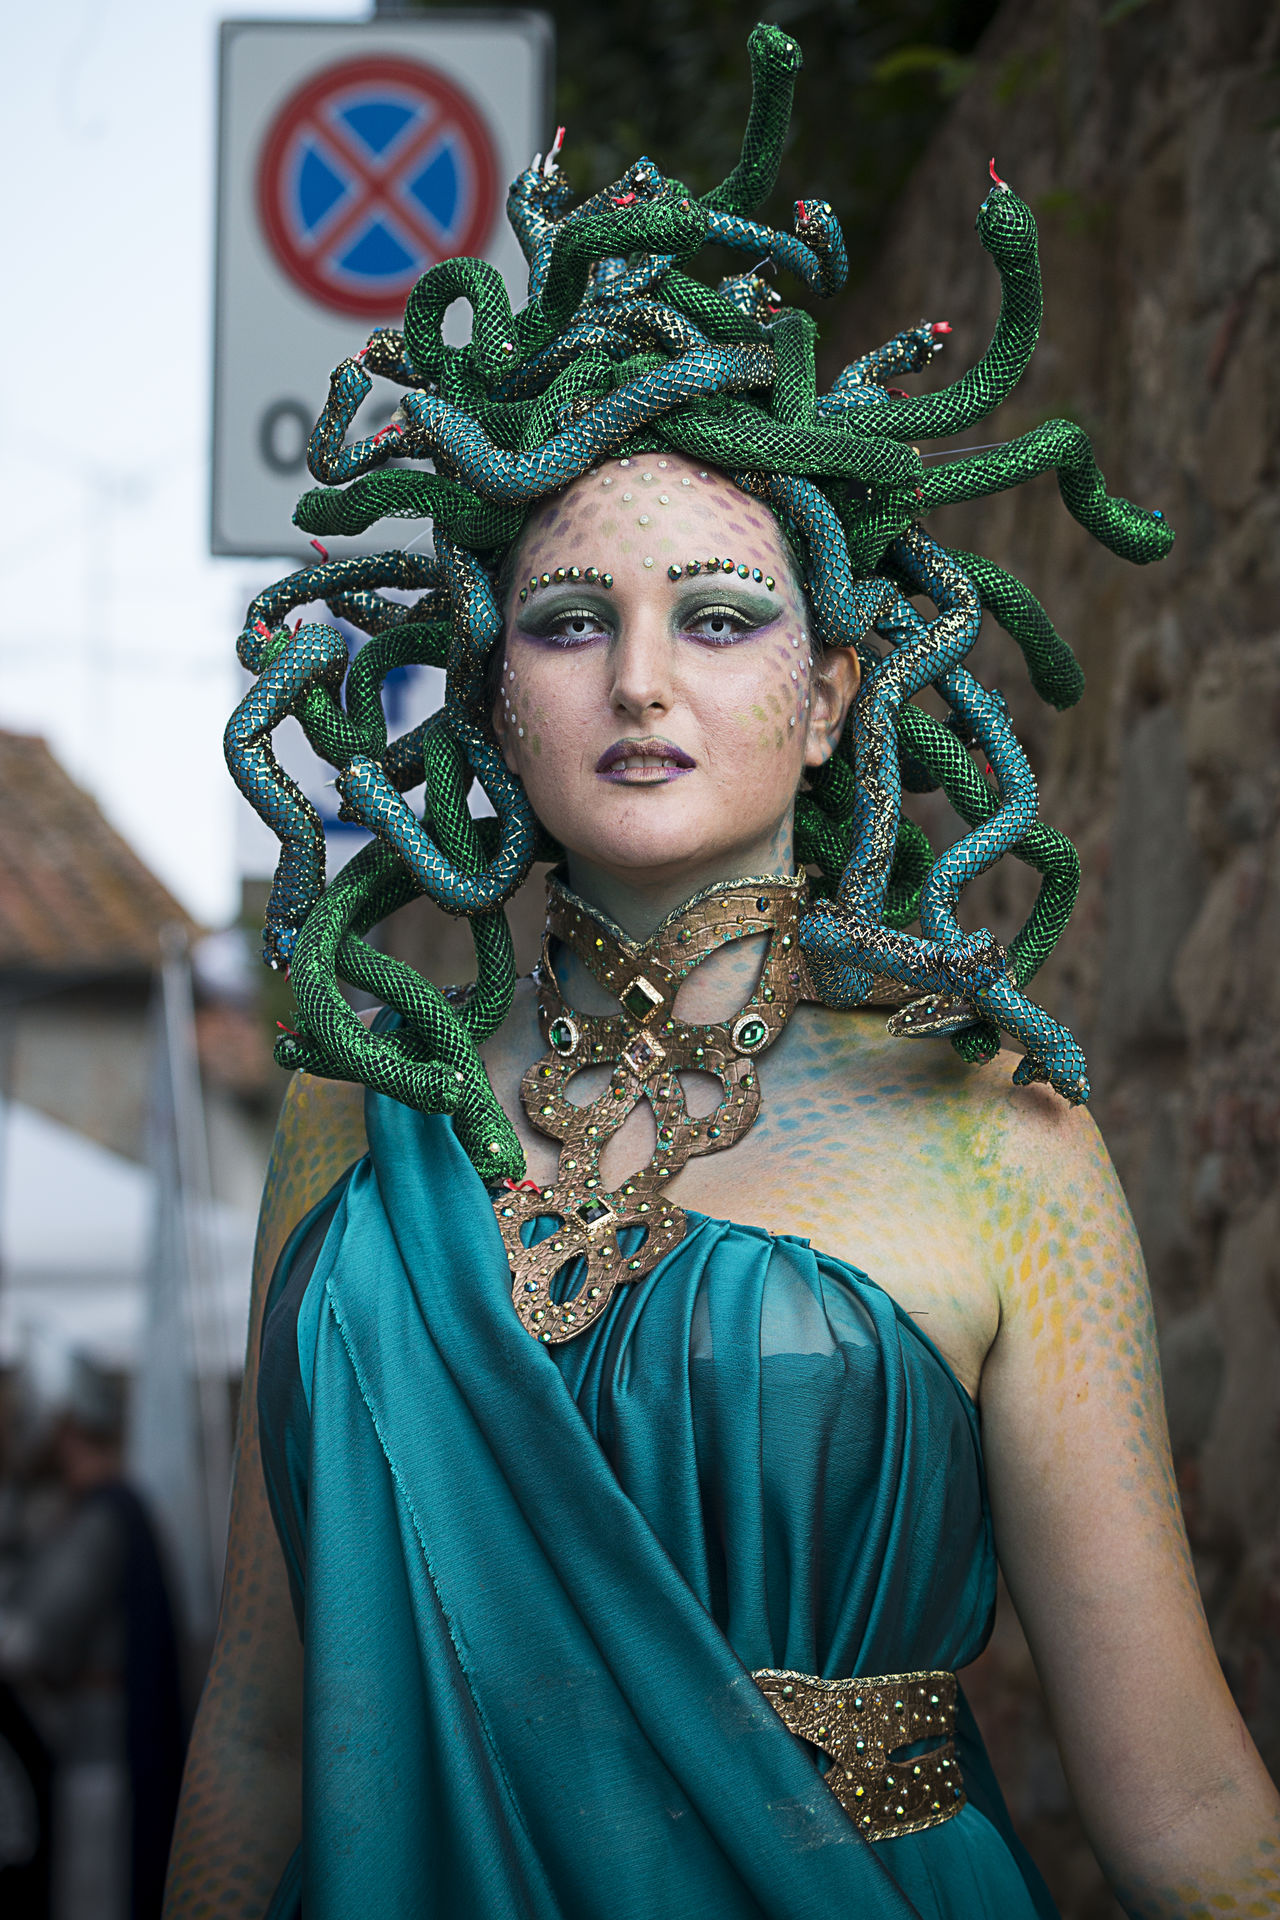 Canon Canon 70d Canon_photos Canonphotography Costume Day Eye4photography  EyeEm EyeEm Gallery Mask Masks Medusa The Great Outdoors - 2016 EyeEm Awards TheWeekOnEyeEM Vinci Woman